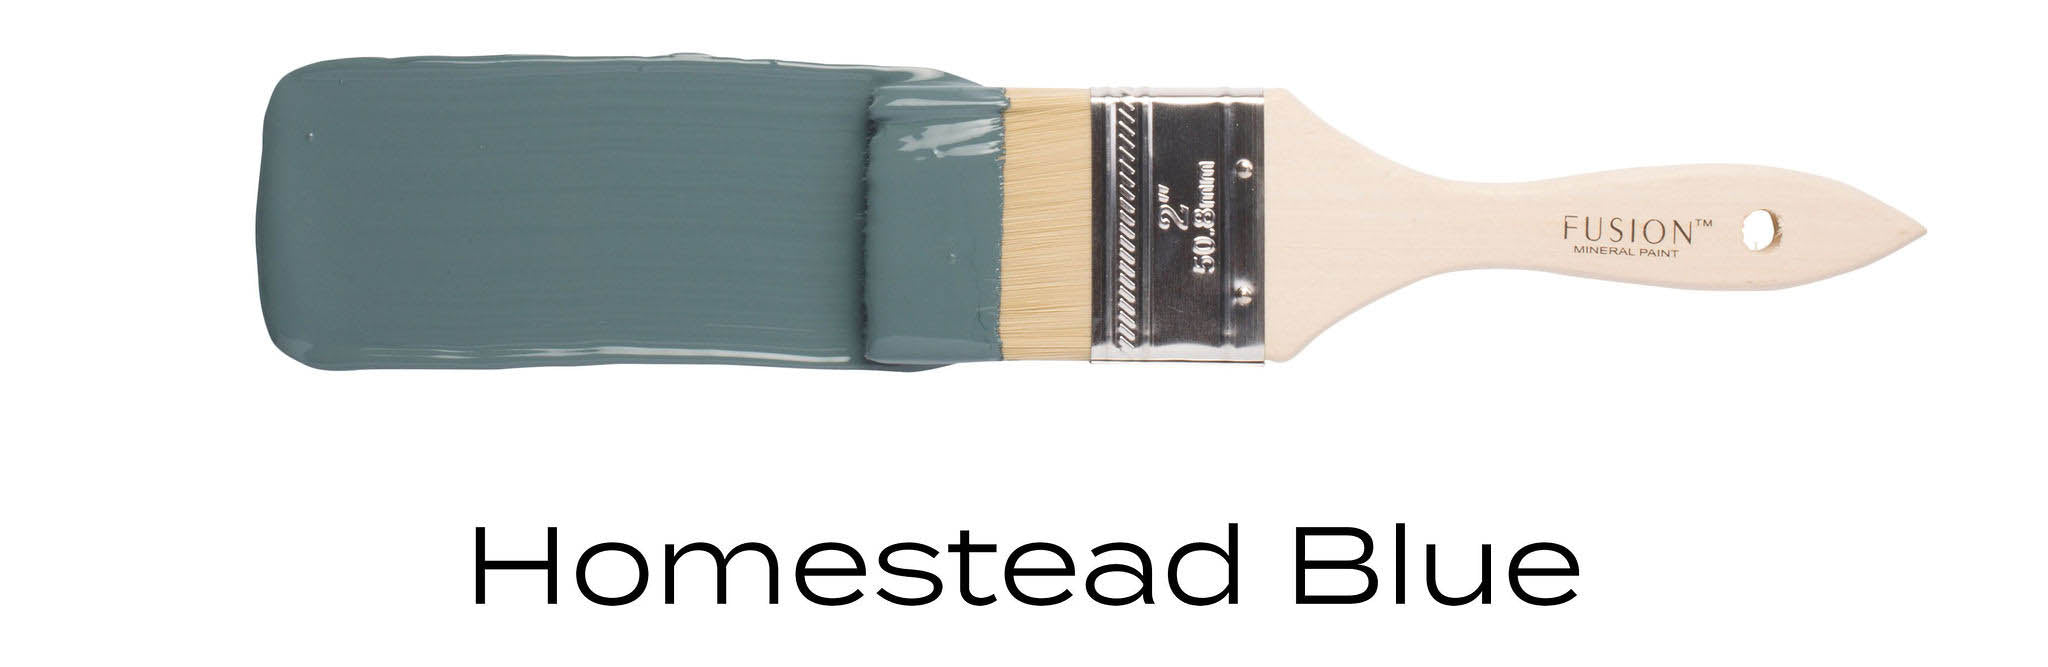 homestead blue fusion mineral paint example on paint brush